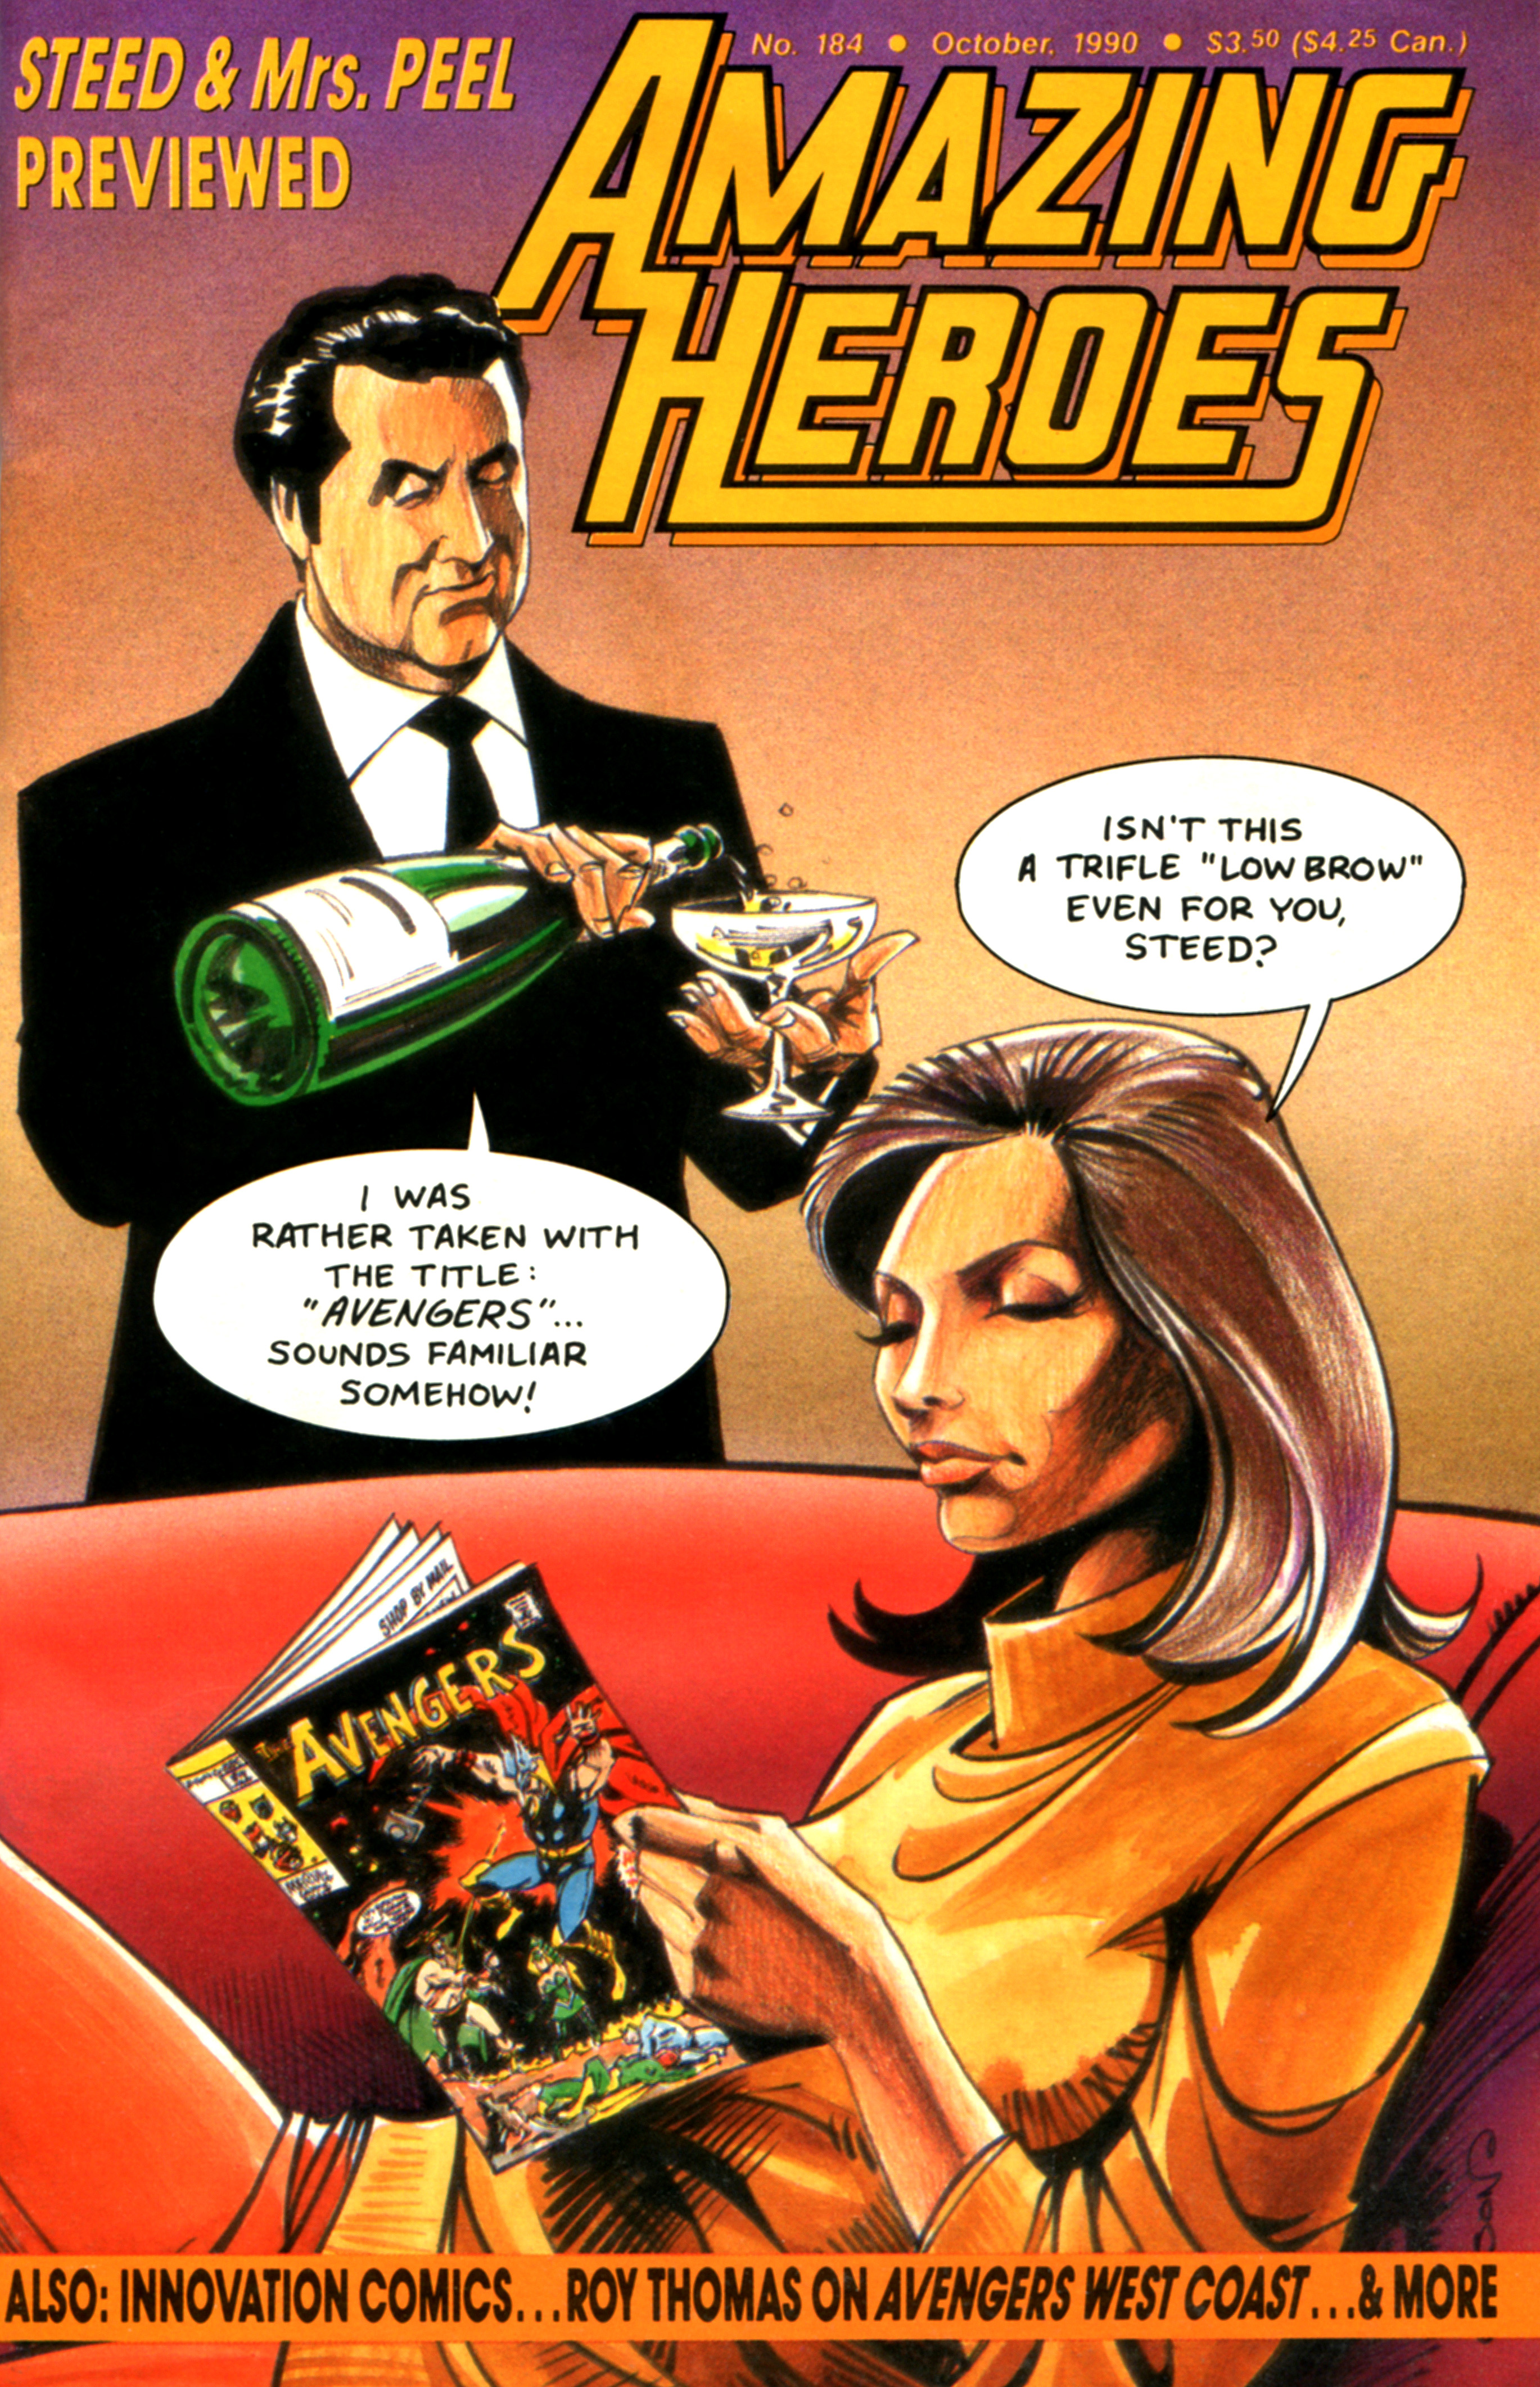 Read online Amazing Heroes comic -  Issue #184 - 1